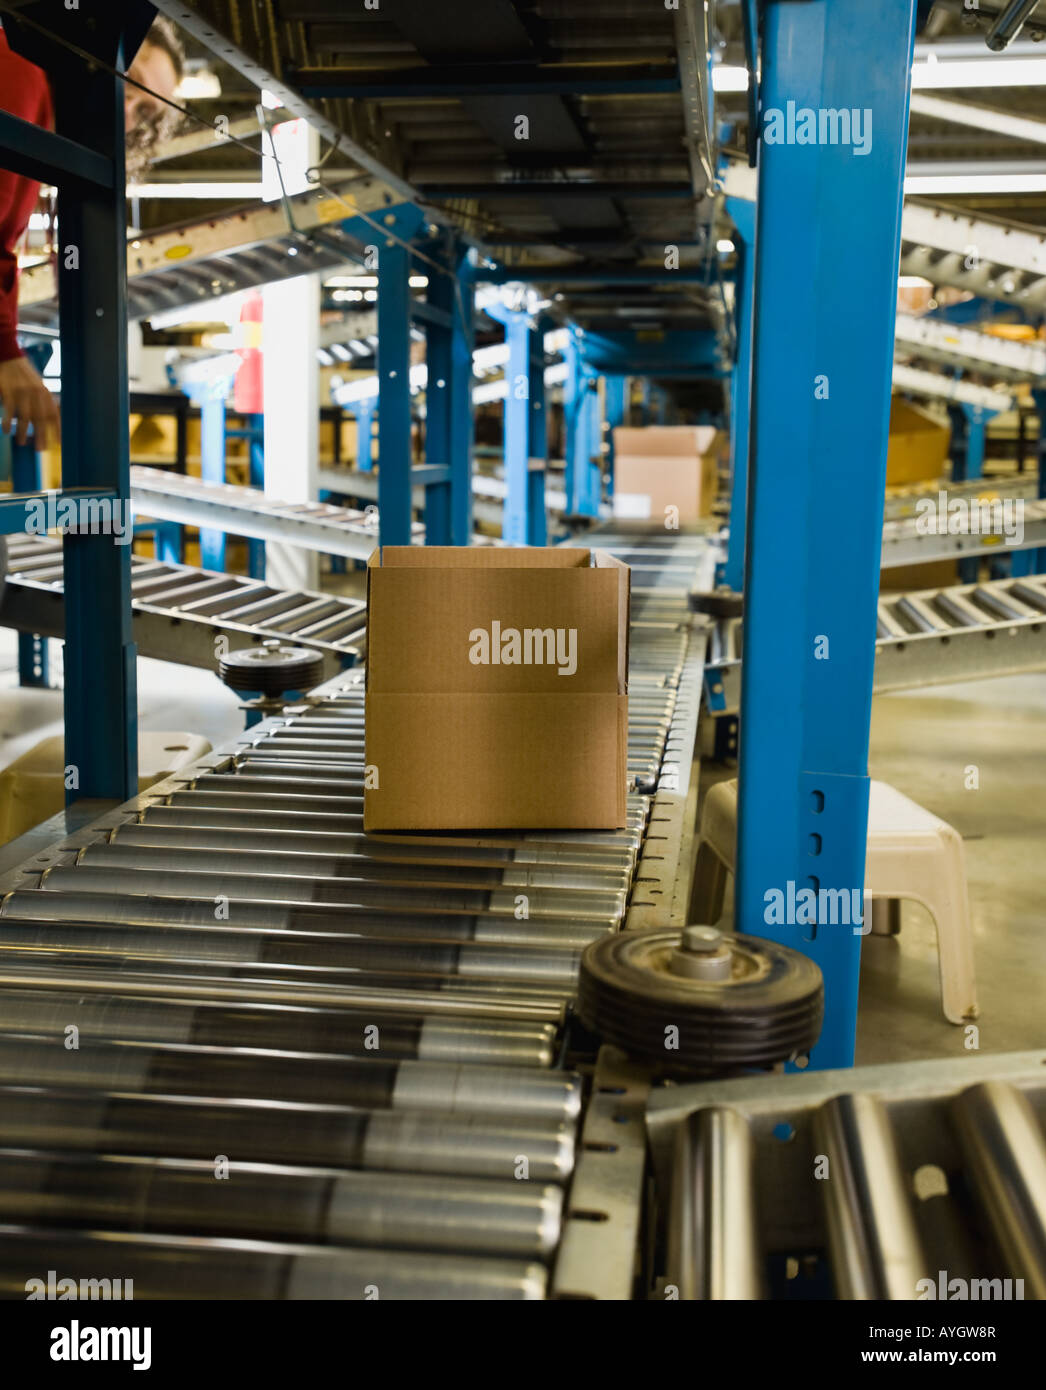 Boxes on conveyor belt in warehouse - Stock Image